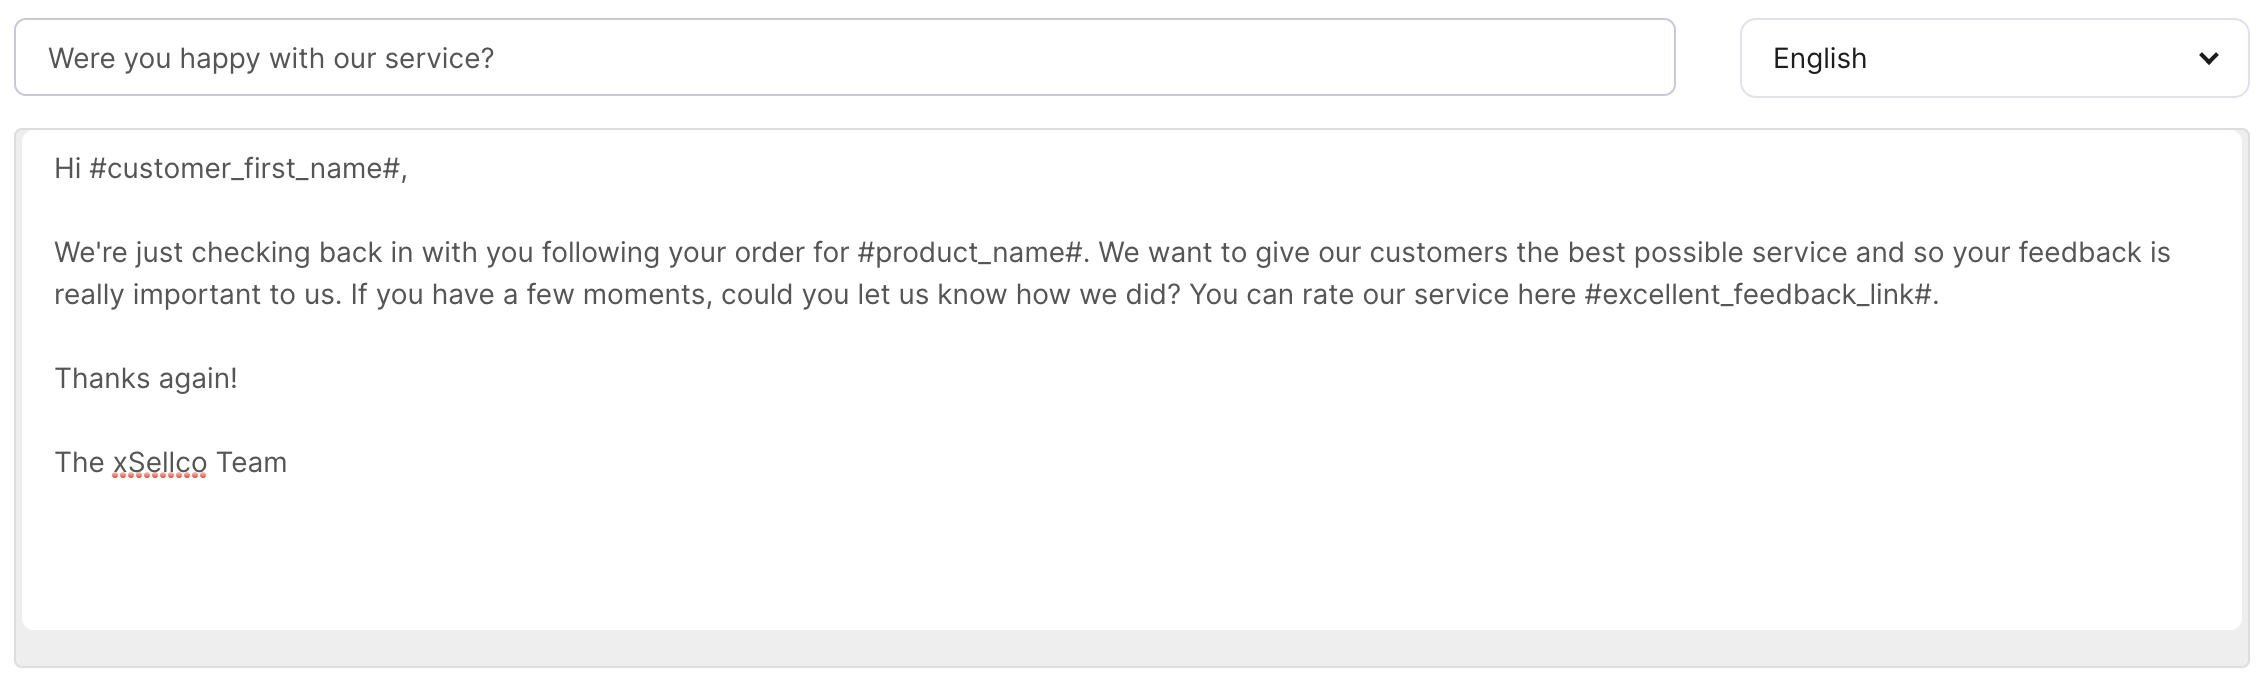 New feedback message using snippets